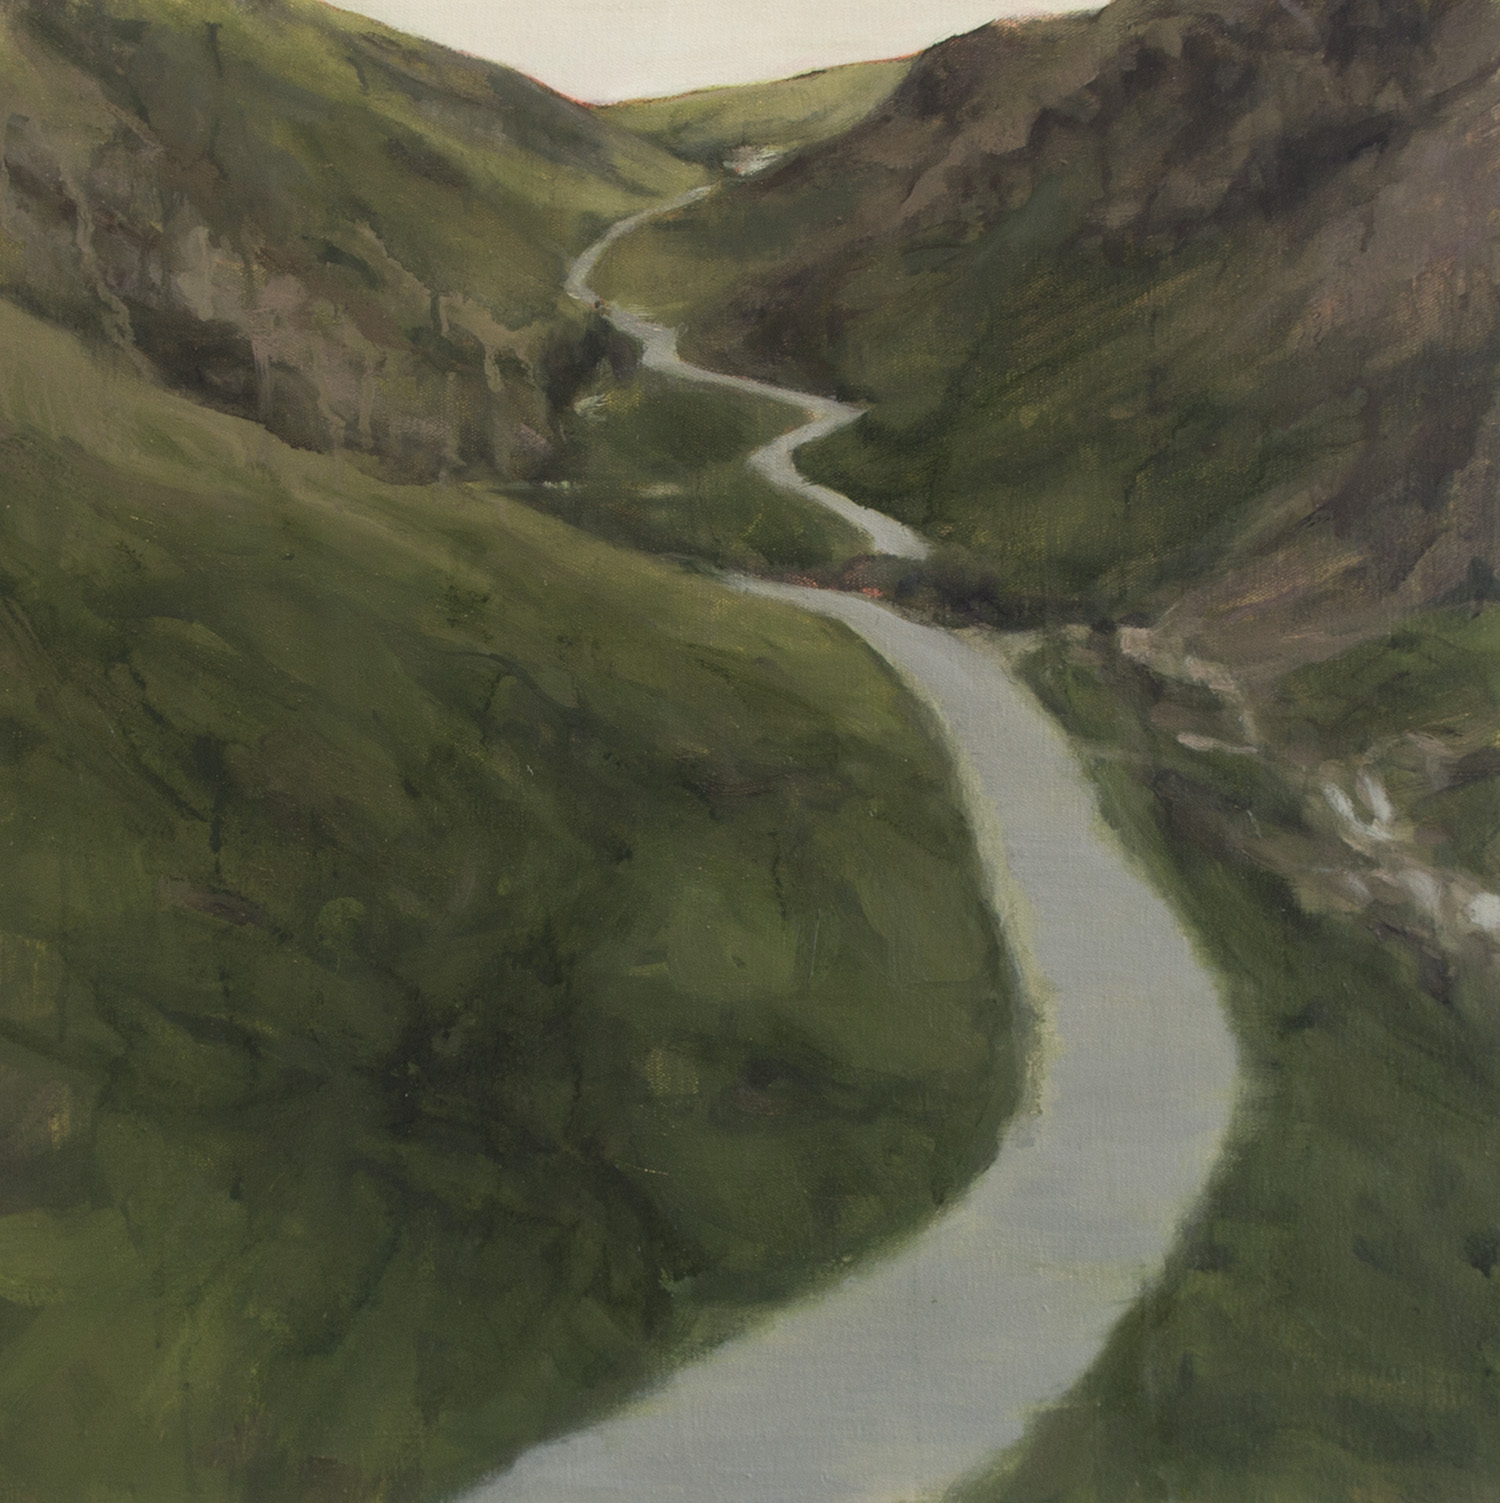 The Road, 2015, 20 x 20 inches, oil on canvas